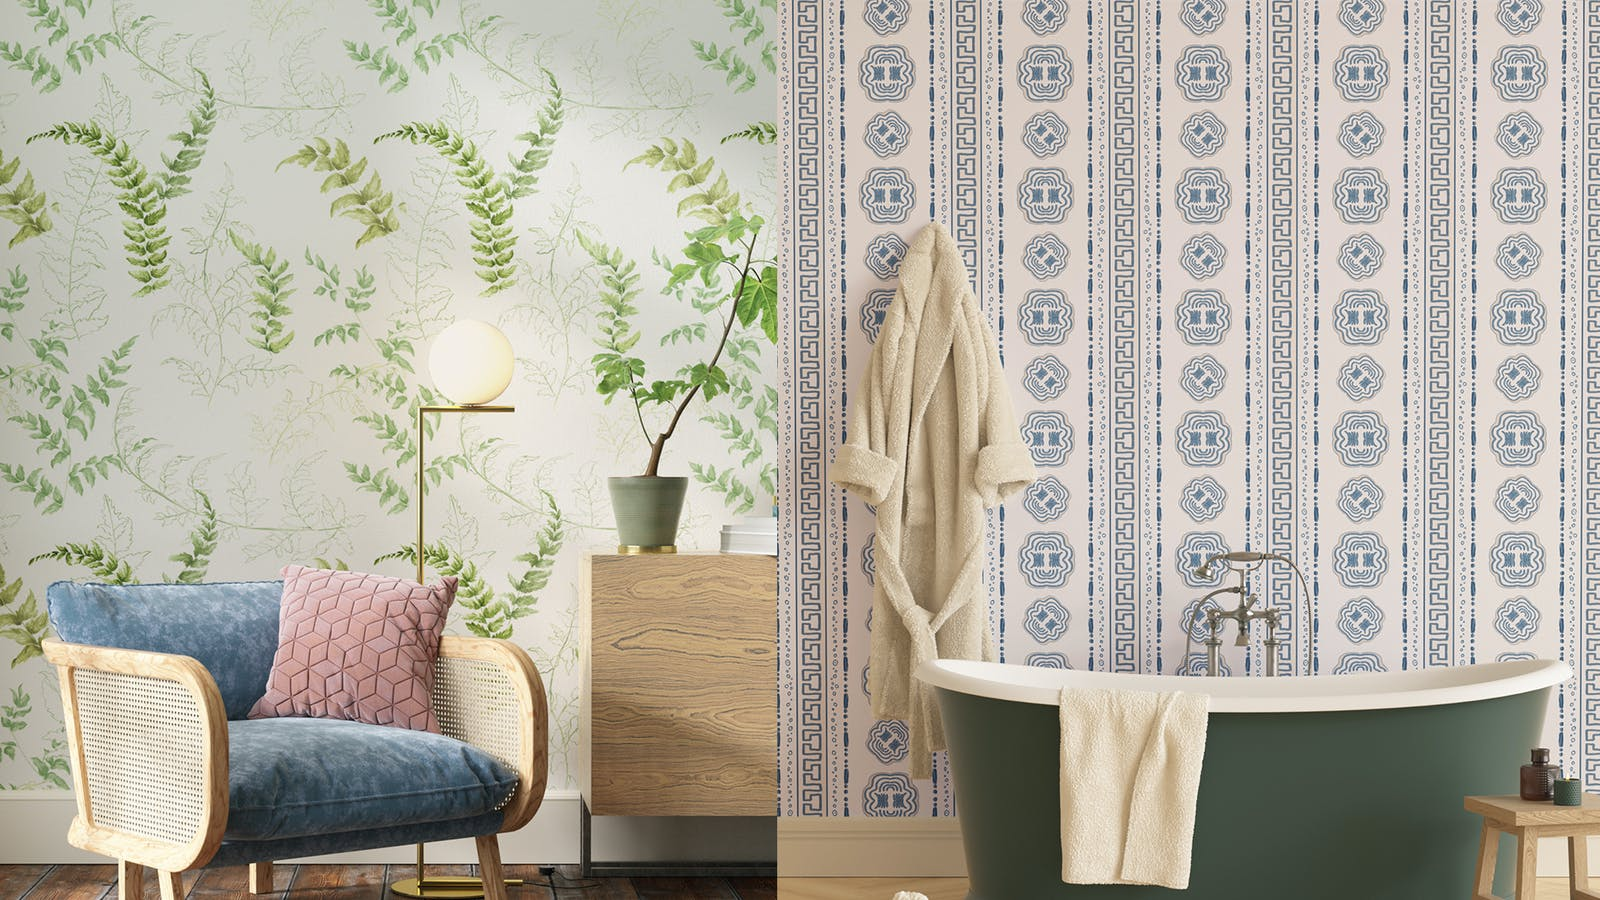 Living room with Fern 01 wallpaper and Bathroom with Hestia 01 wallpaper